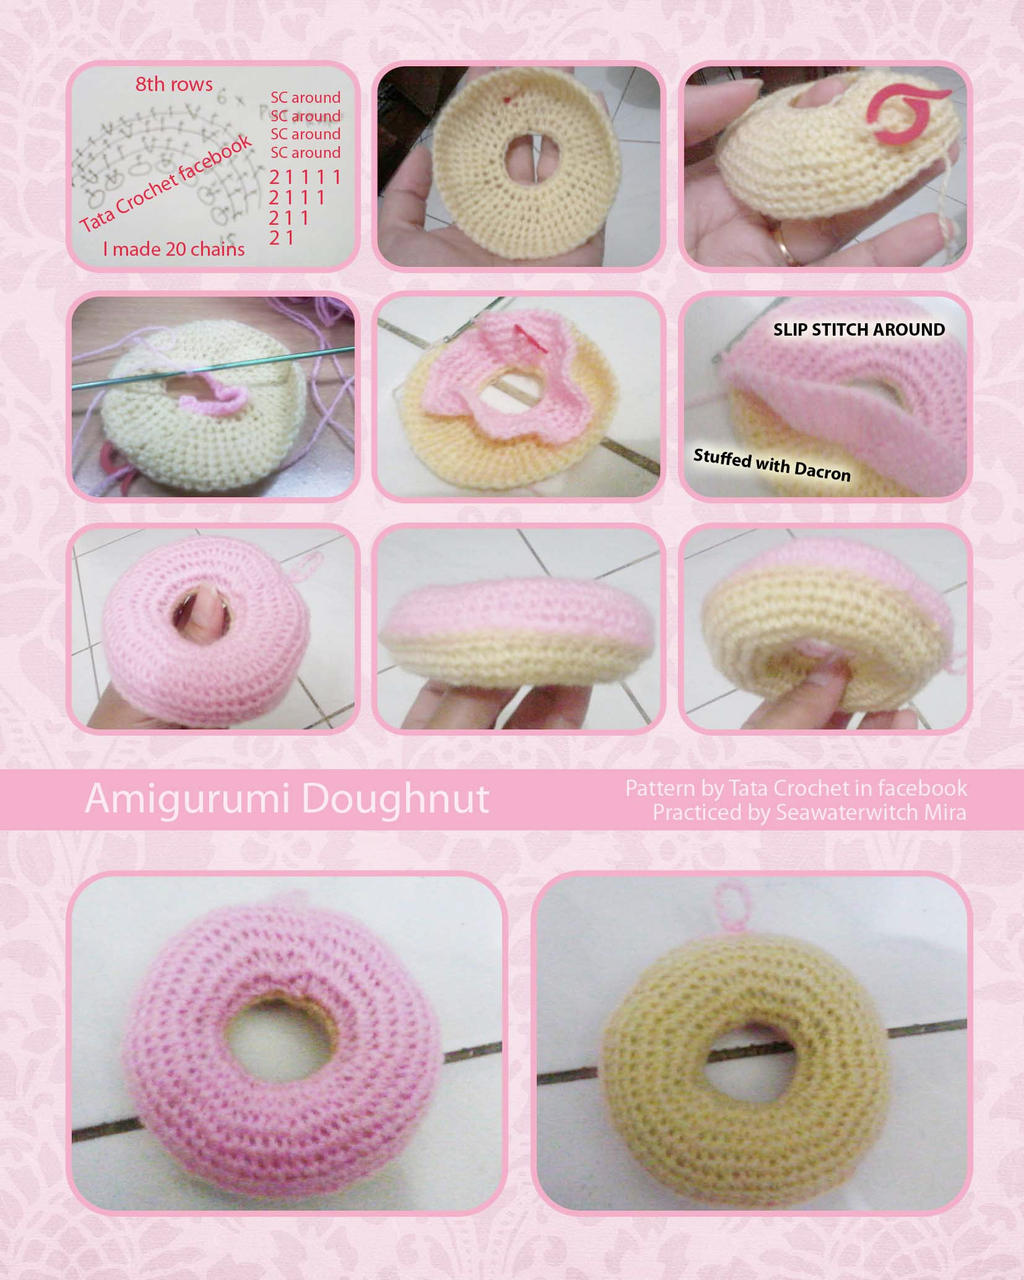 Free Online Crochet Patterns For Amigurumi : Amigurumi Doughnut by seawaterwitch on DeviantArt